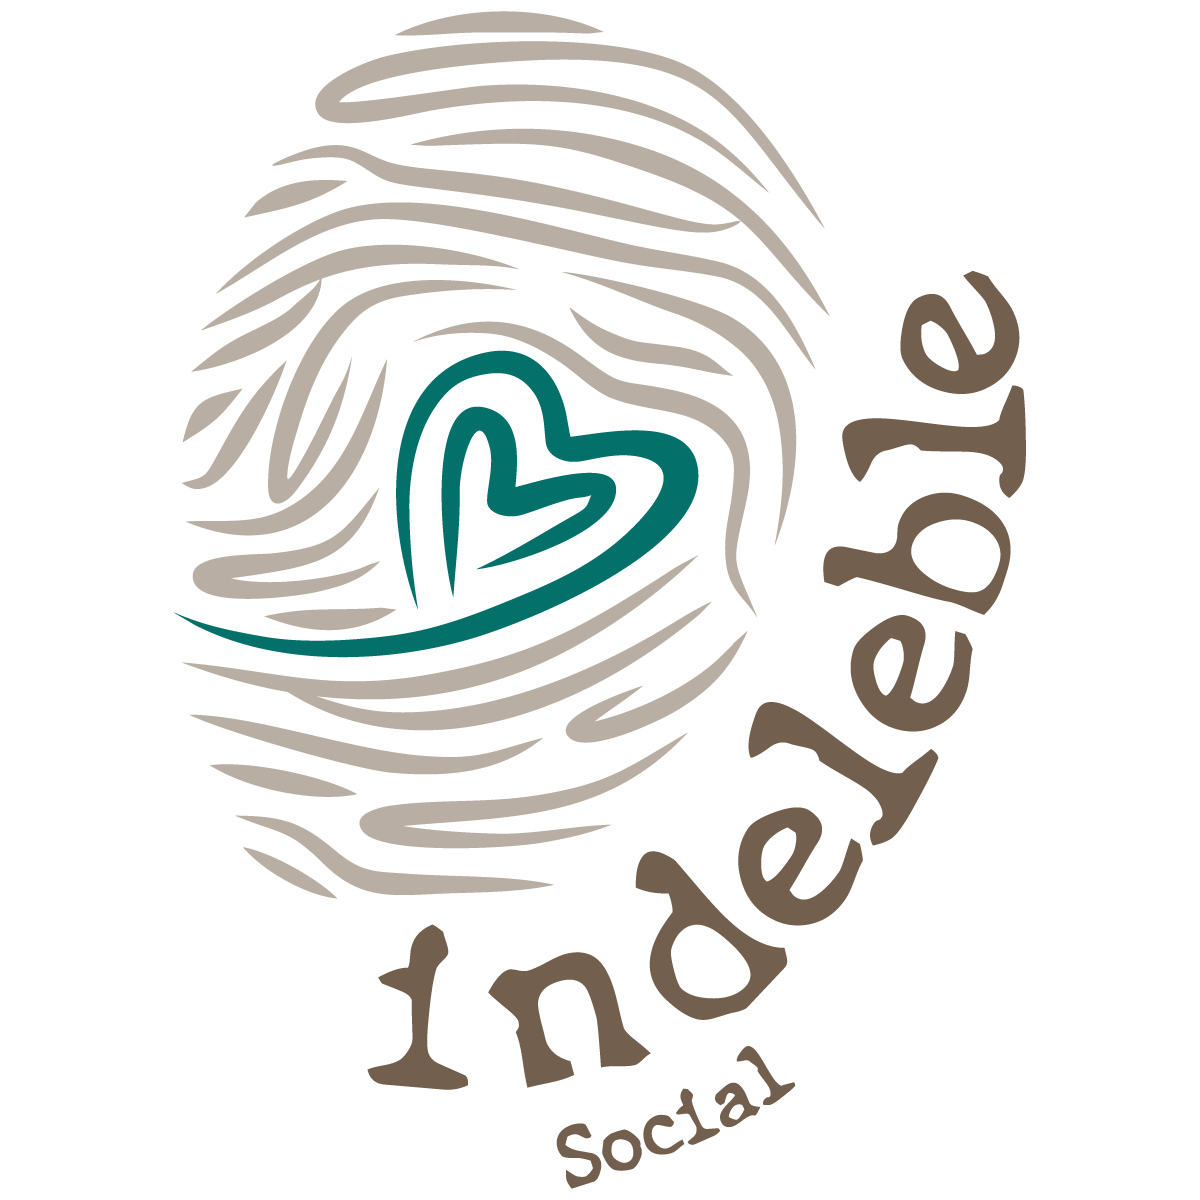 Indeleble social